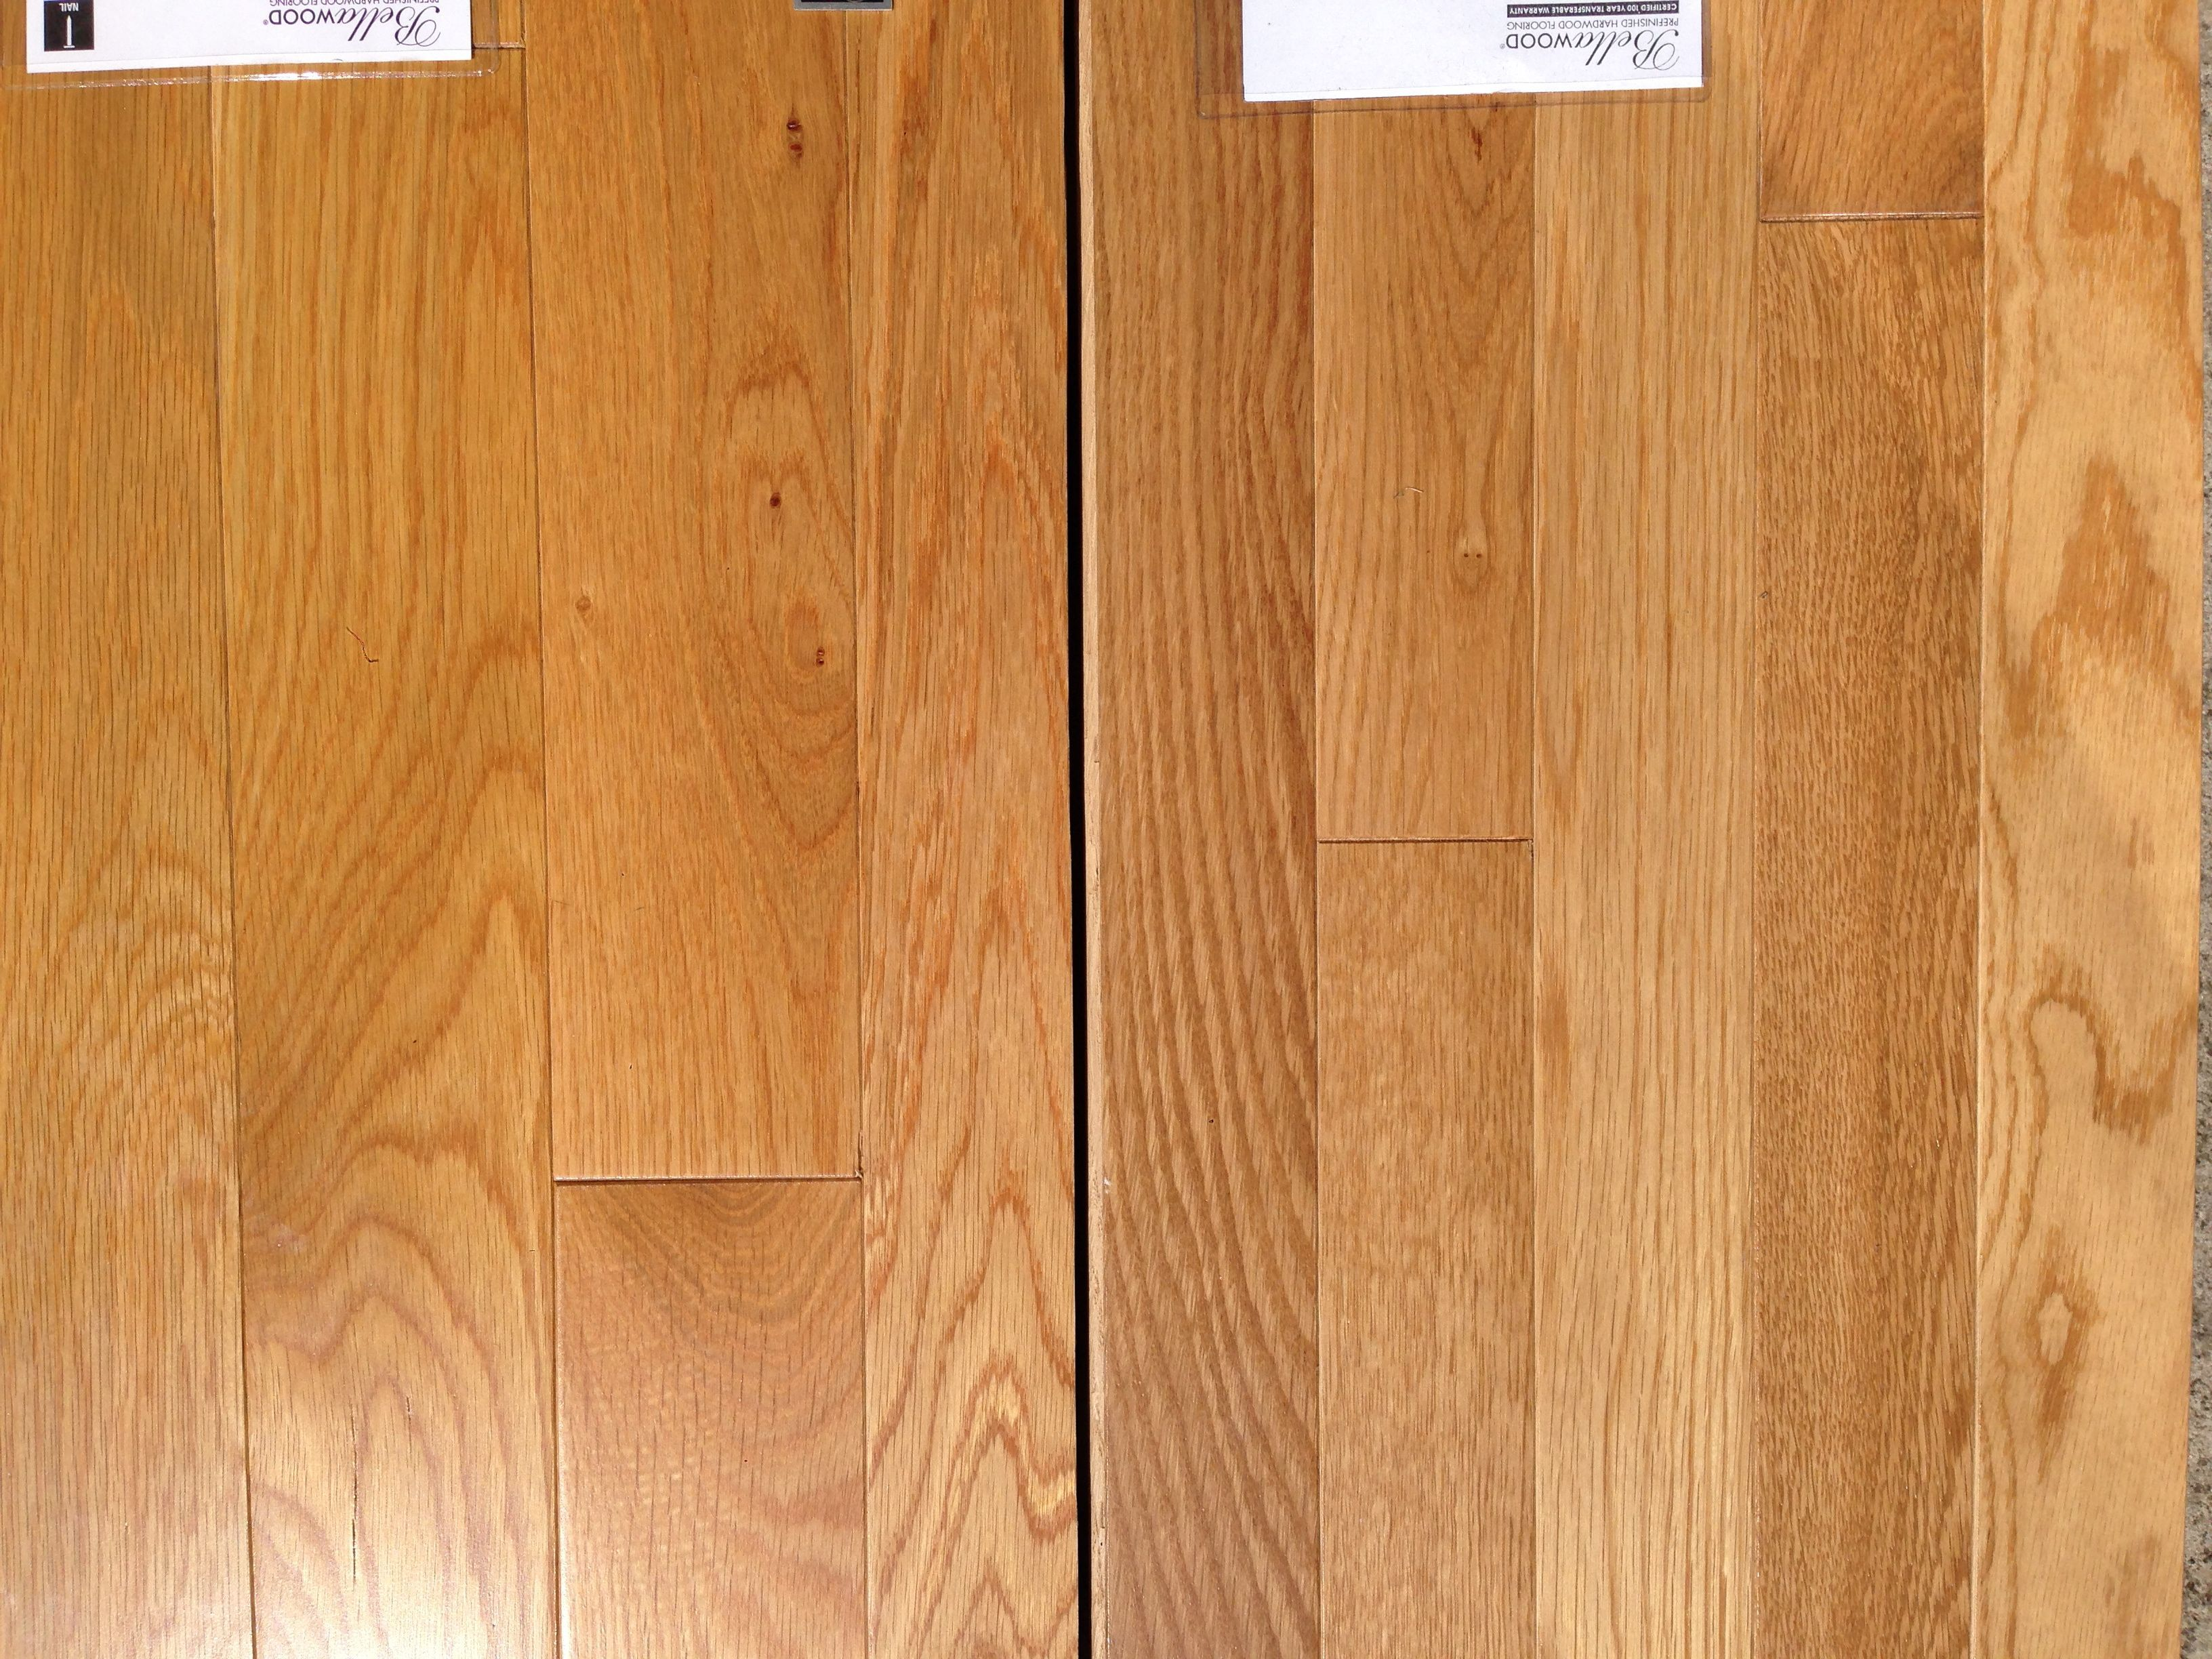 Flooring eclectic hardwood flooring boston by paris ceramics - White Oak 2 1 4 Vs 3 1 4 Floor Colorswhite Oakwood Floor